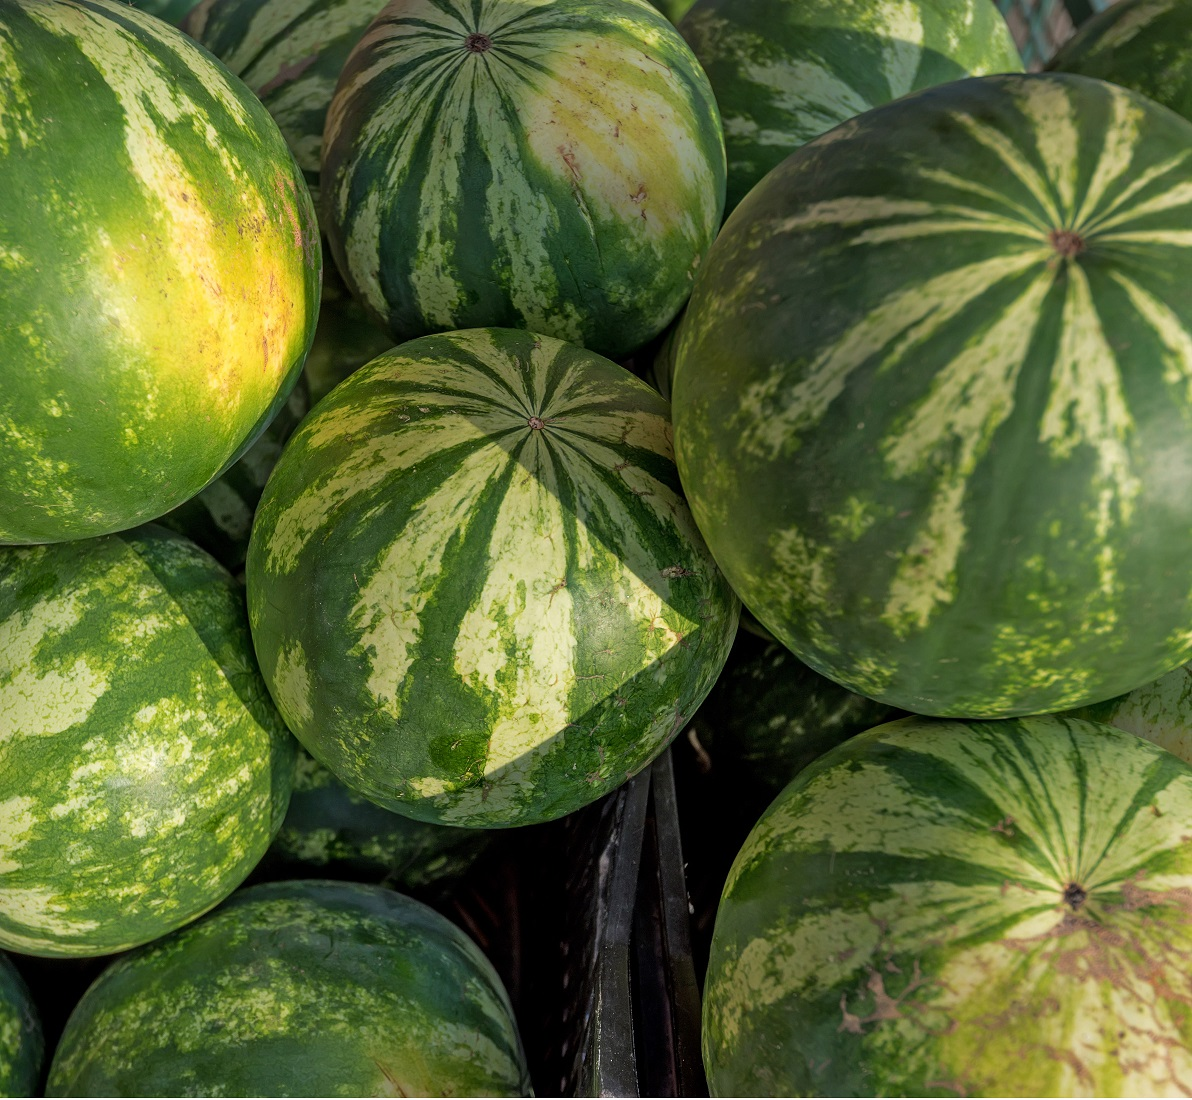 Watermelons on the market